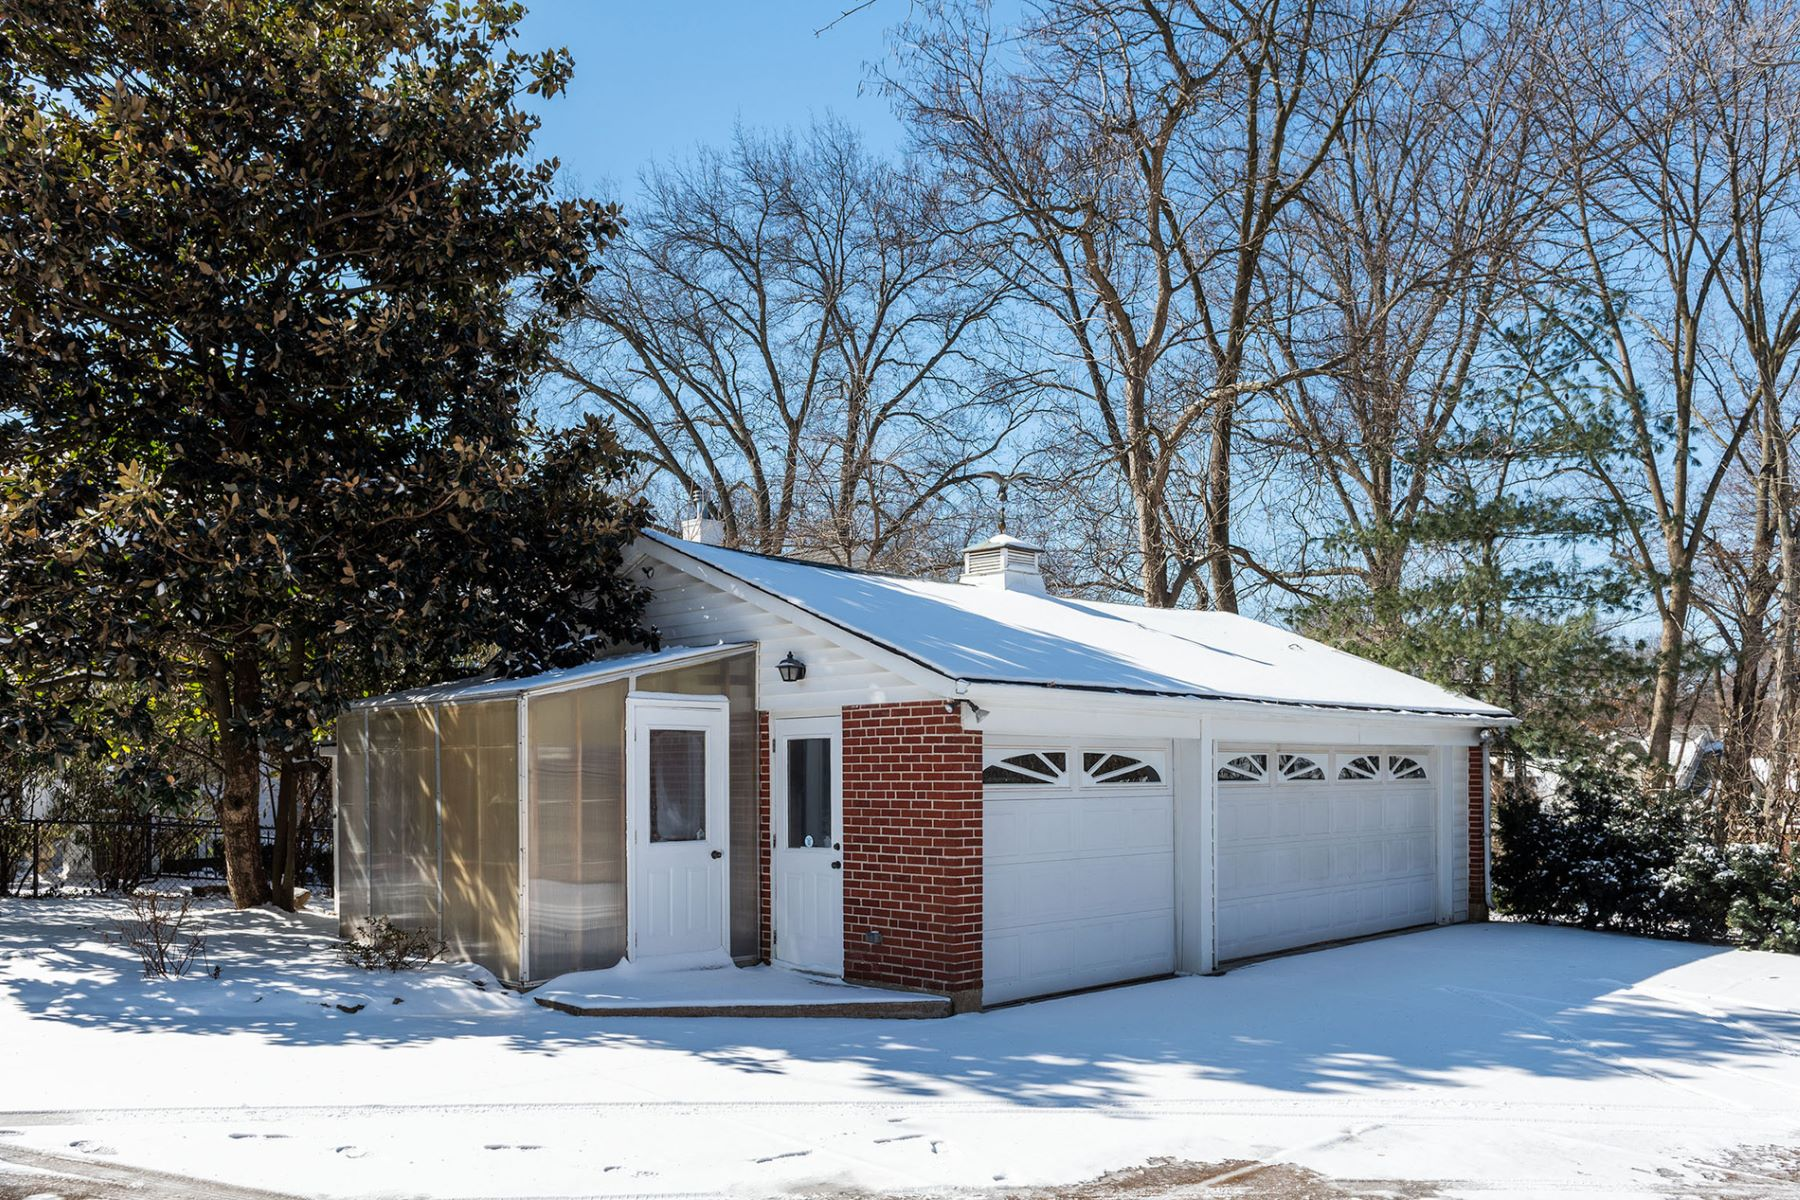 Additional photo for property listing at 331 North Price Road, St. Louis, MO 63124 331 North Price Road St. Louis, Missouri 63124 United States